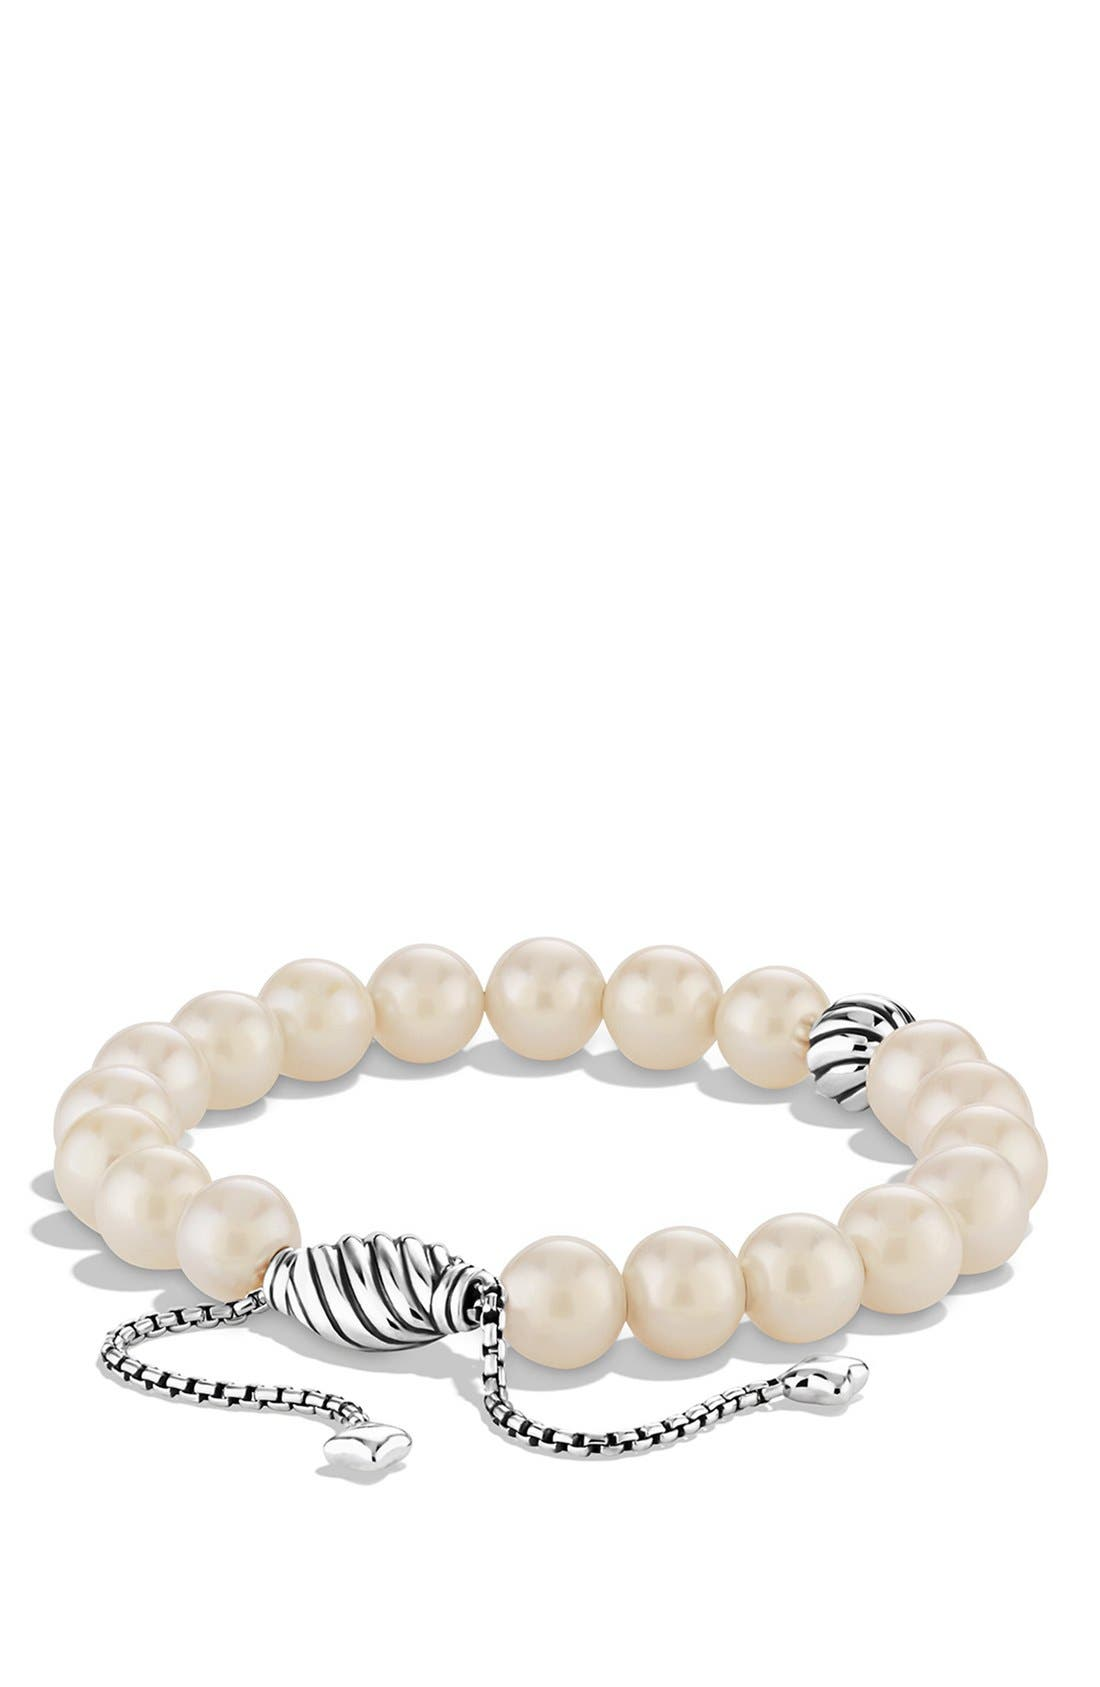 'Spiritual Beads' Bracelet with Pearls,                             Main thumbnail 1, color,                             PEARL